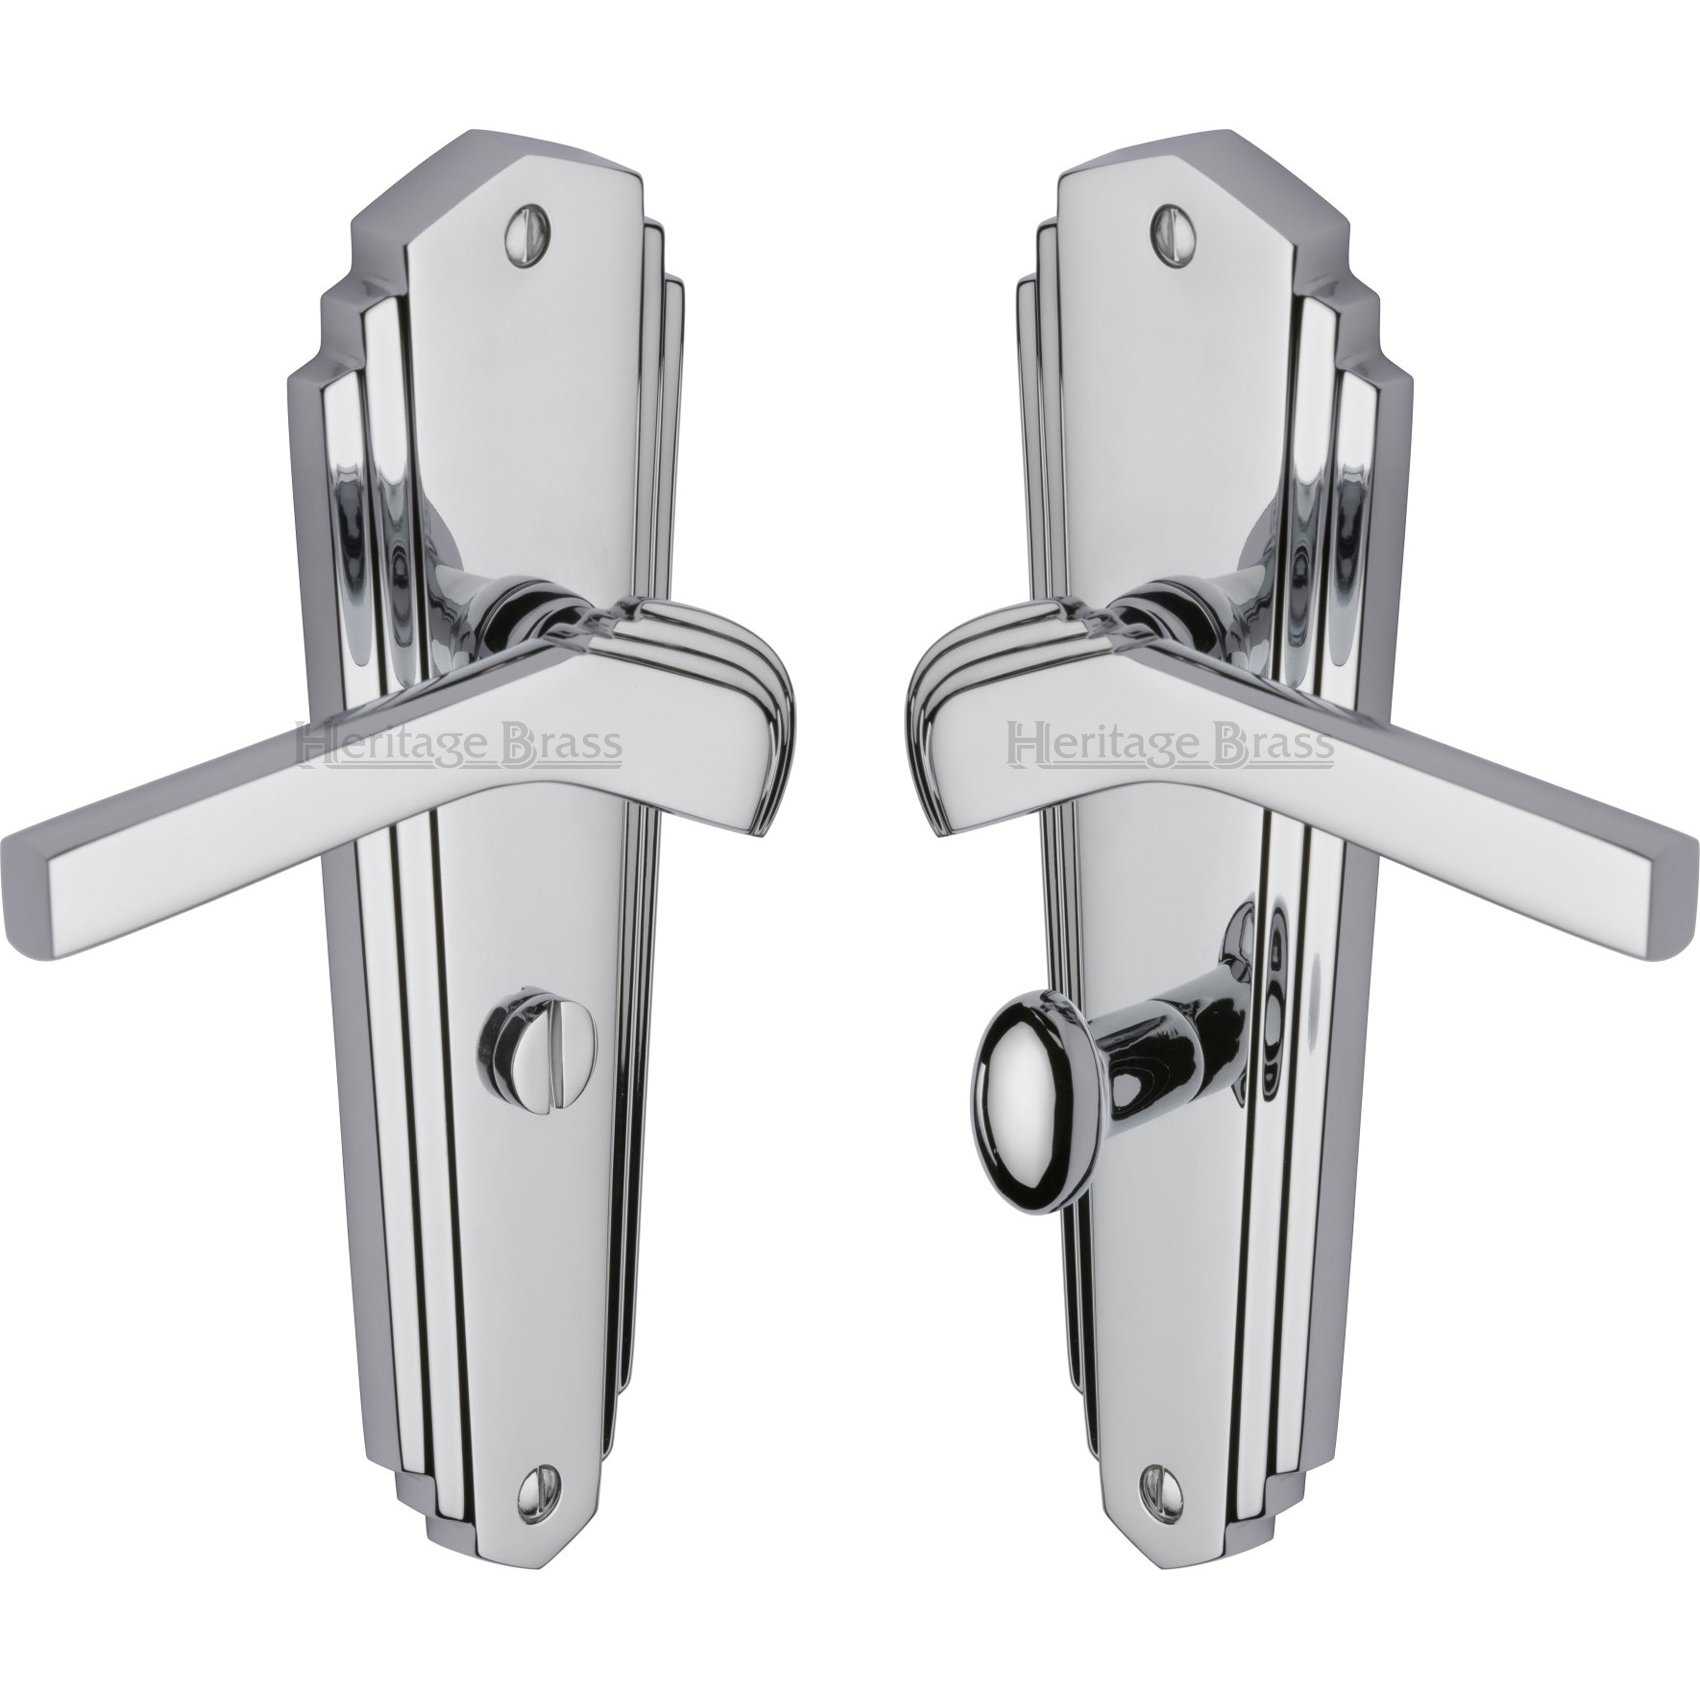 Permalink to White Bathroom Door Handles With Lock